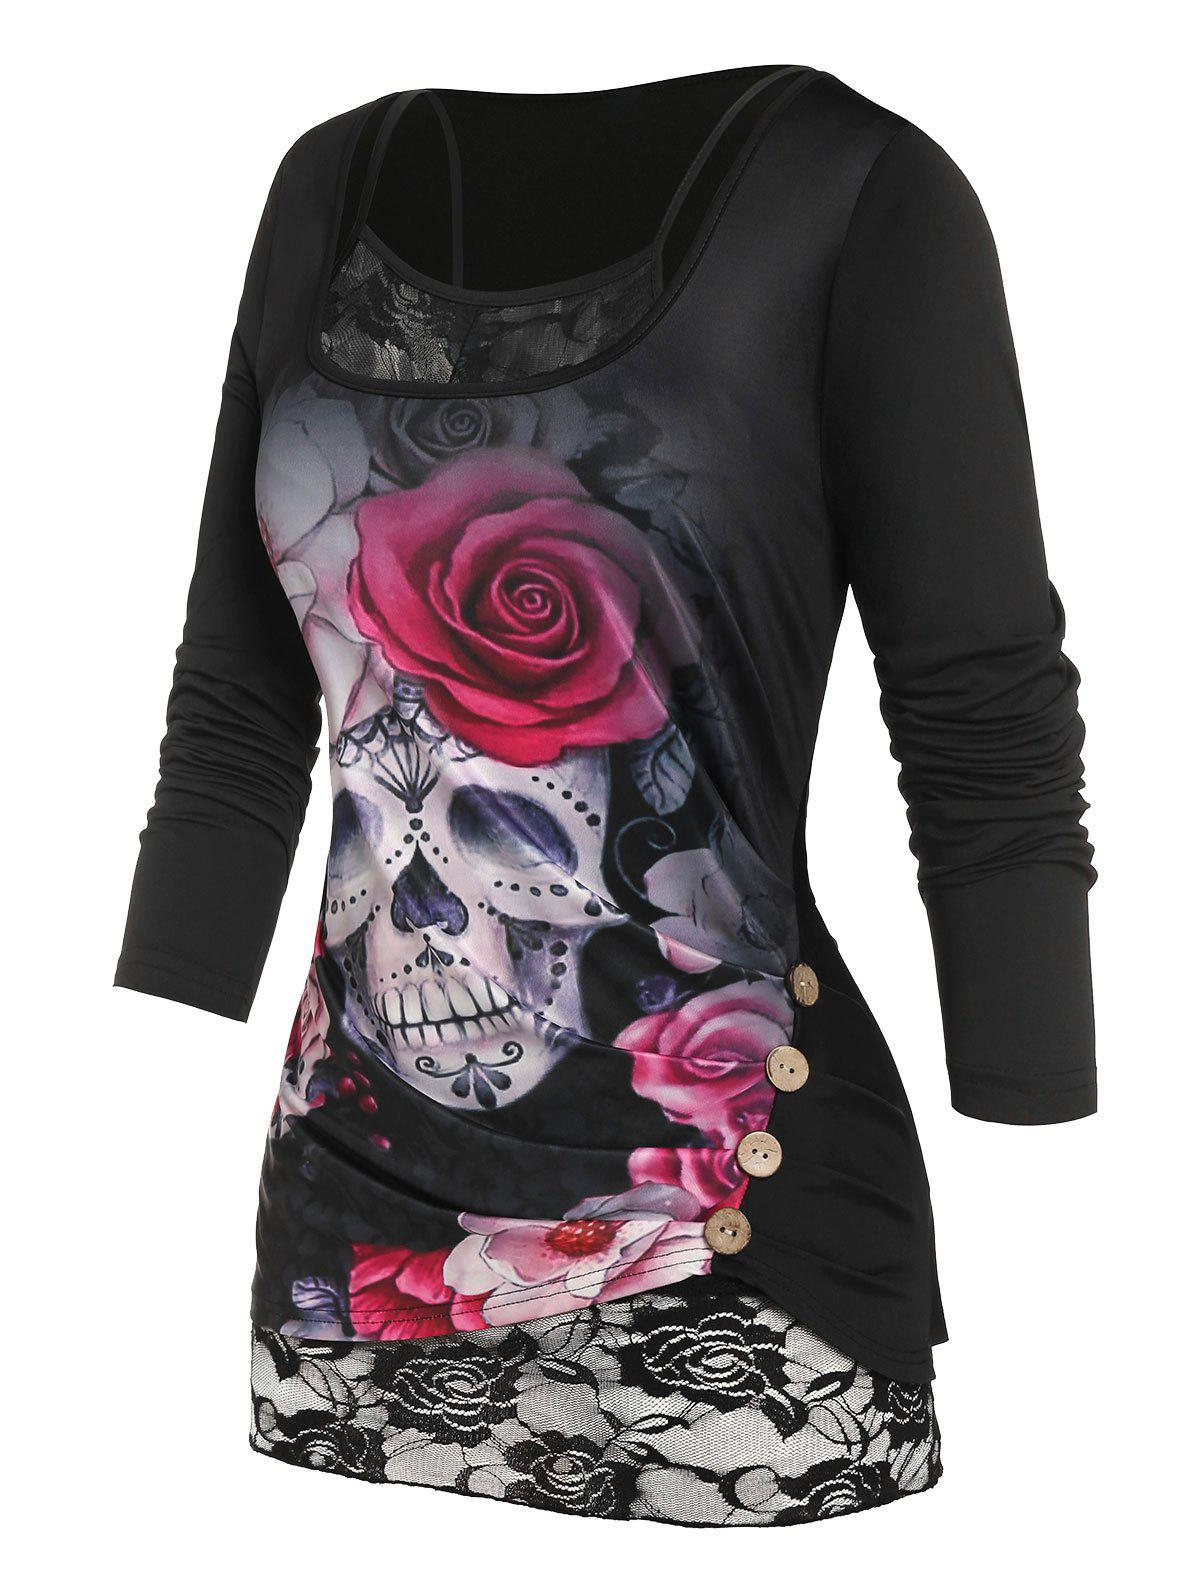 Trendy Plus Size Skull Flower Mock Button T Shirt with Lace Insert Camisole